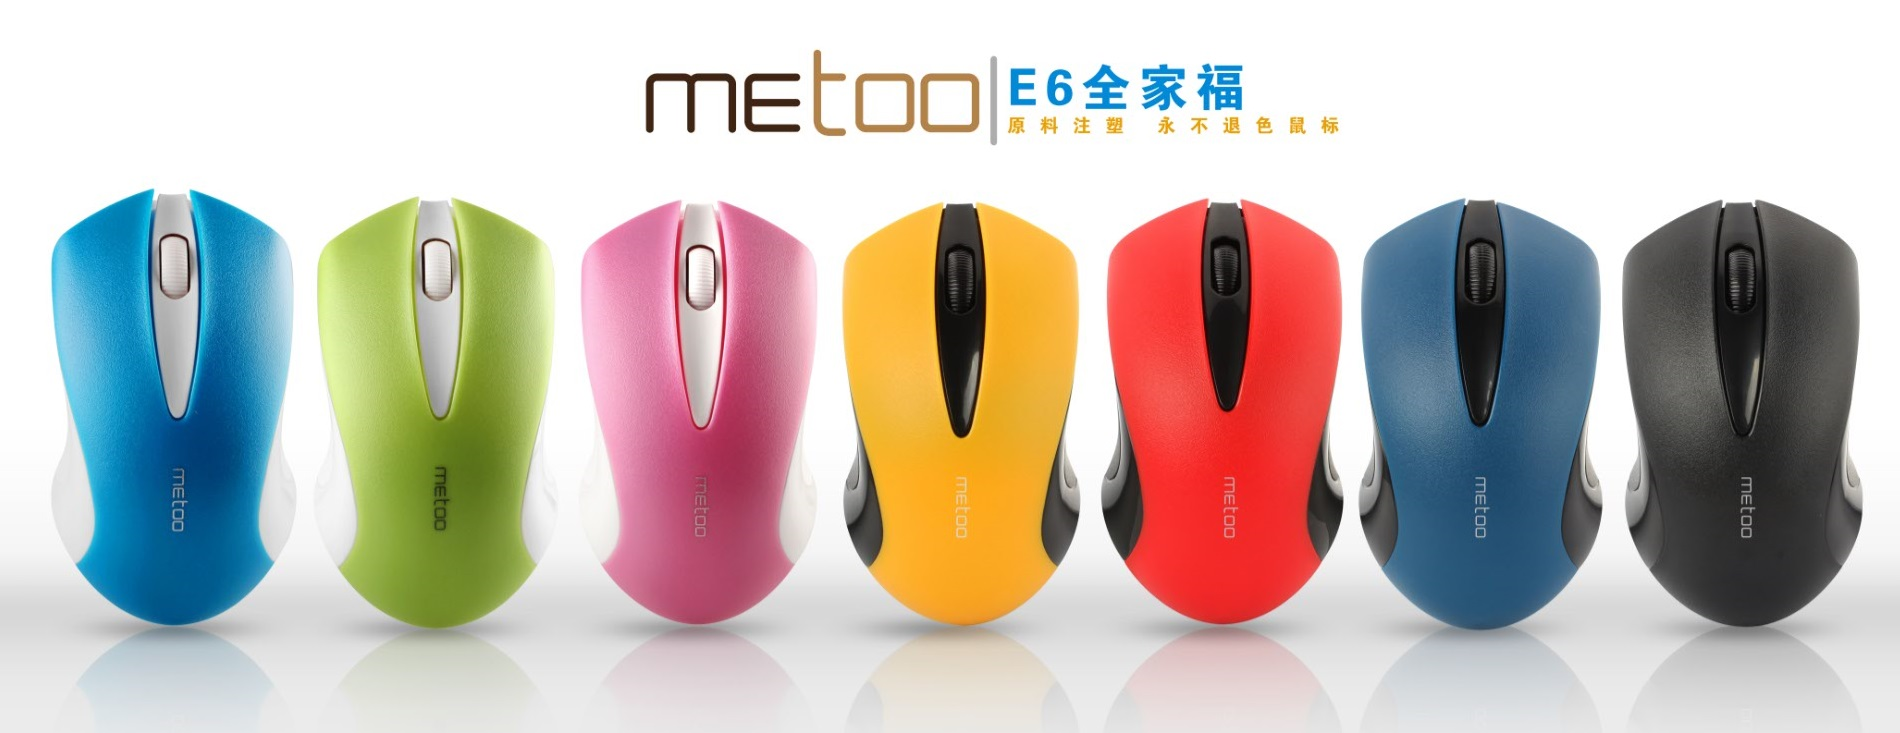 Metoo Wireless mouse E6